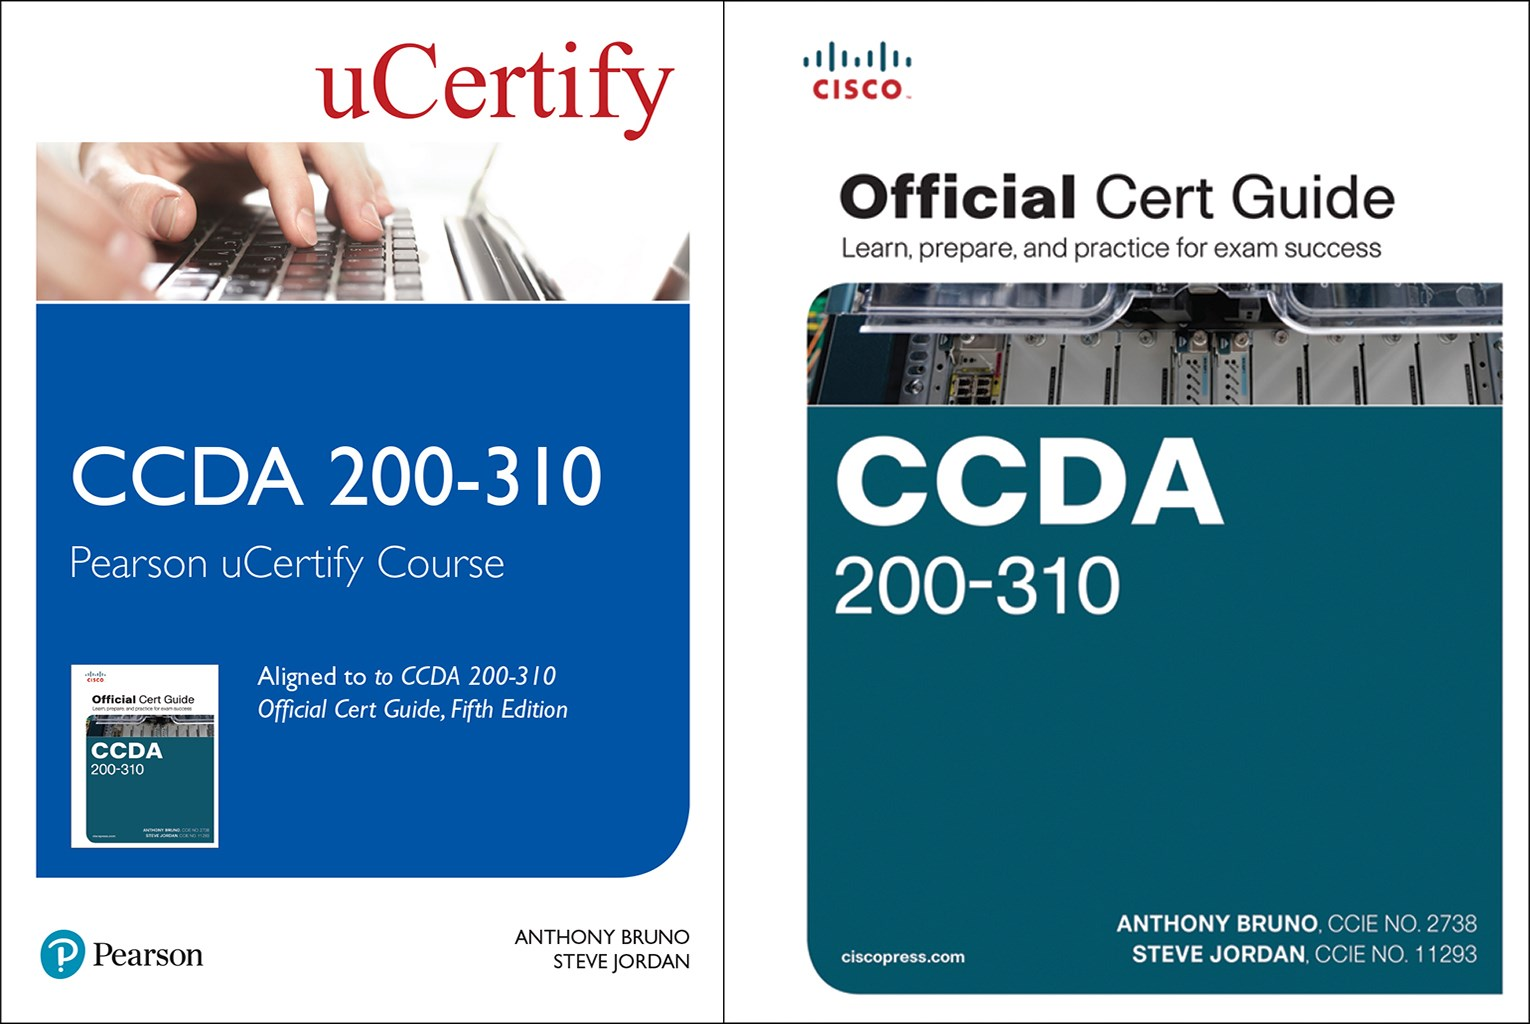 CCDA 200-310 Official Pearson uCertify Course and Textbook Bundle